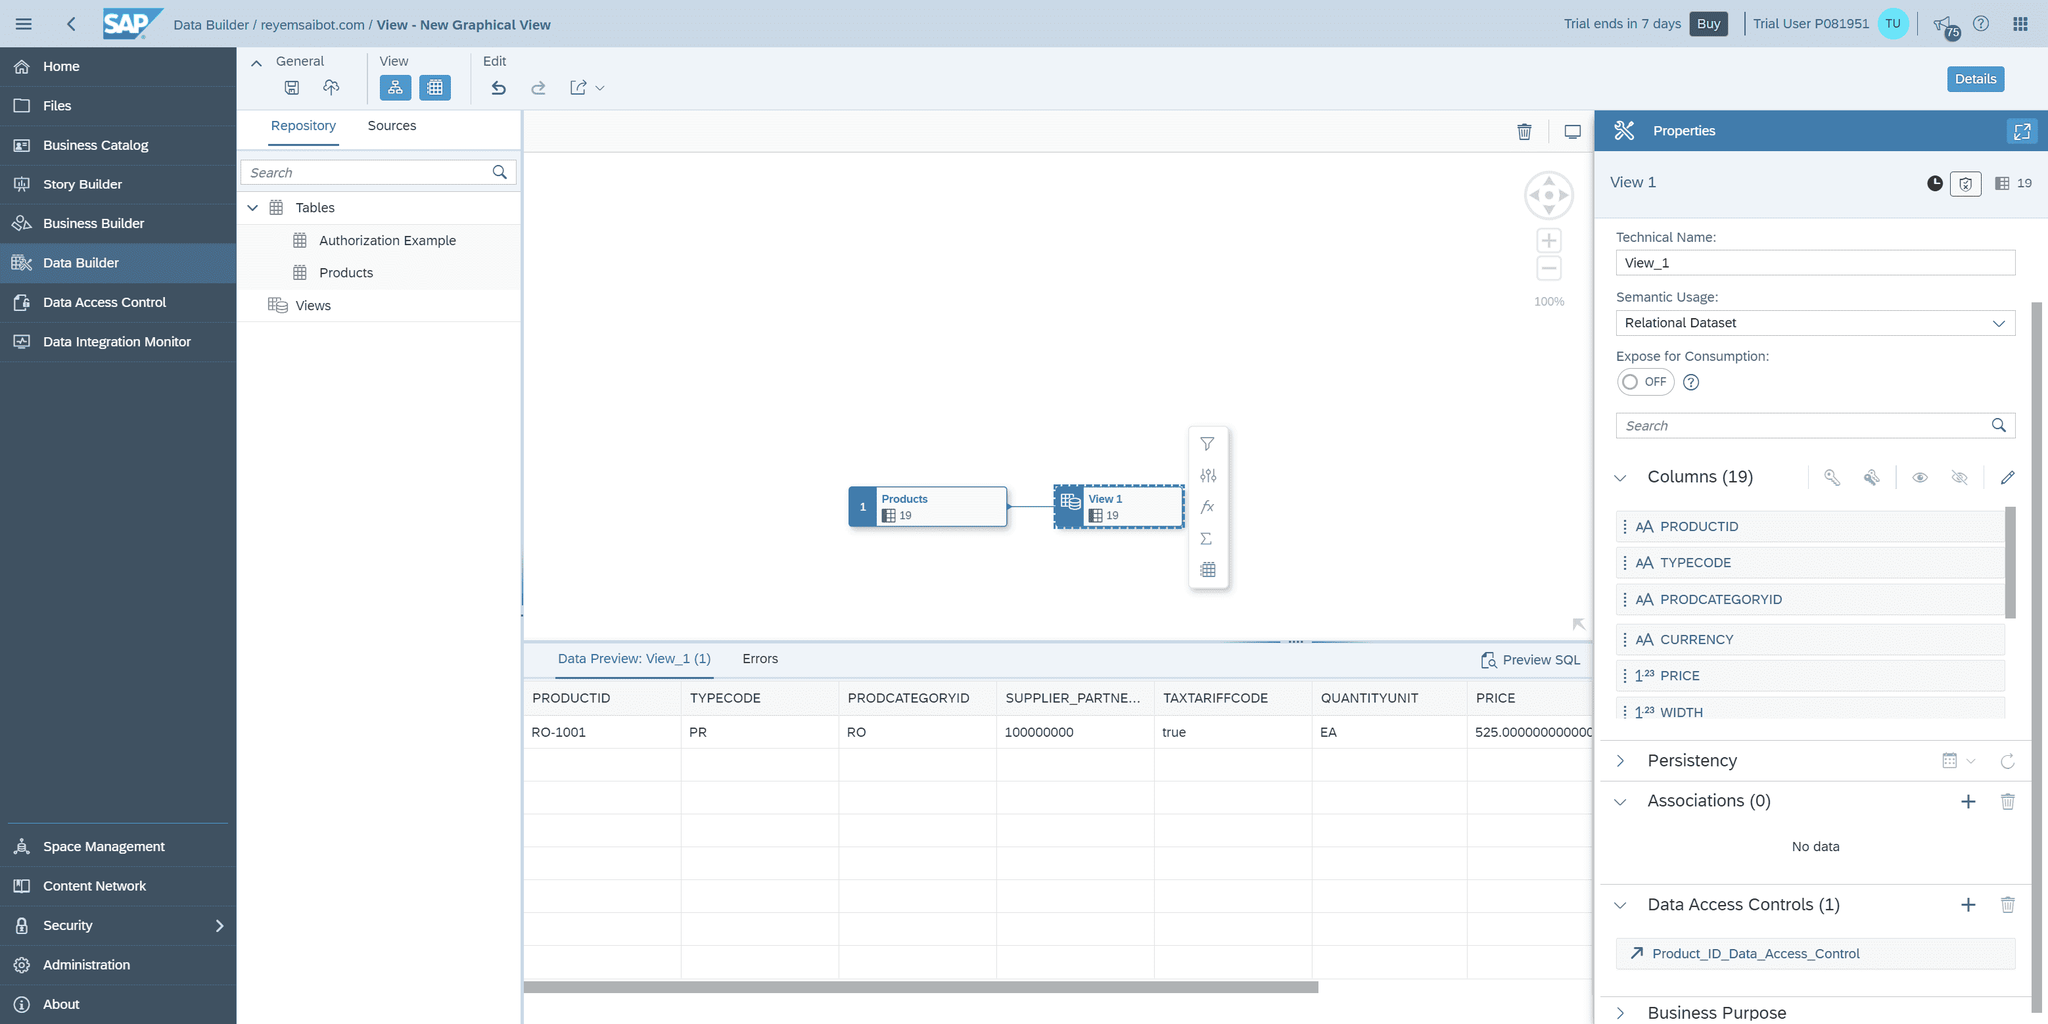 SAP Data Warehouse Cloud Data Preview View with Authorizations